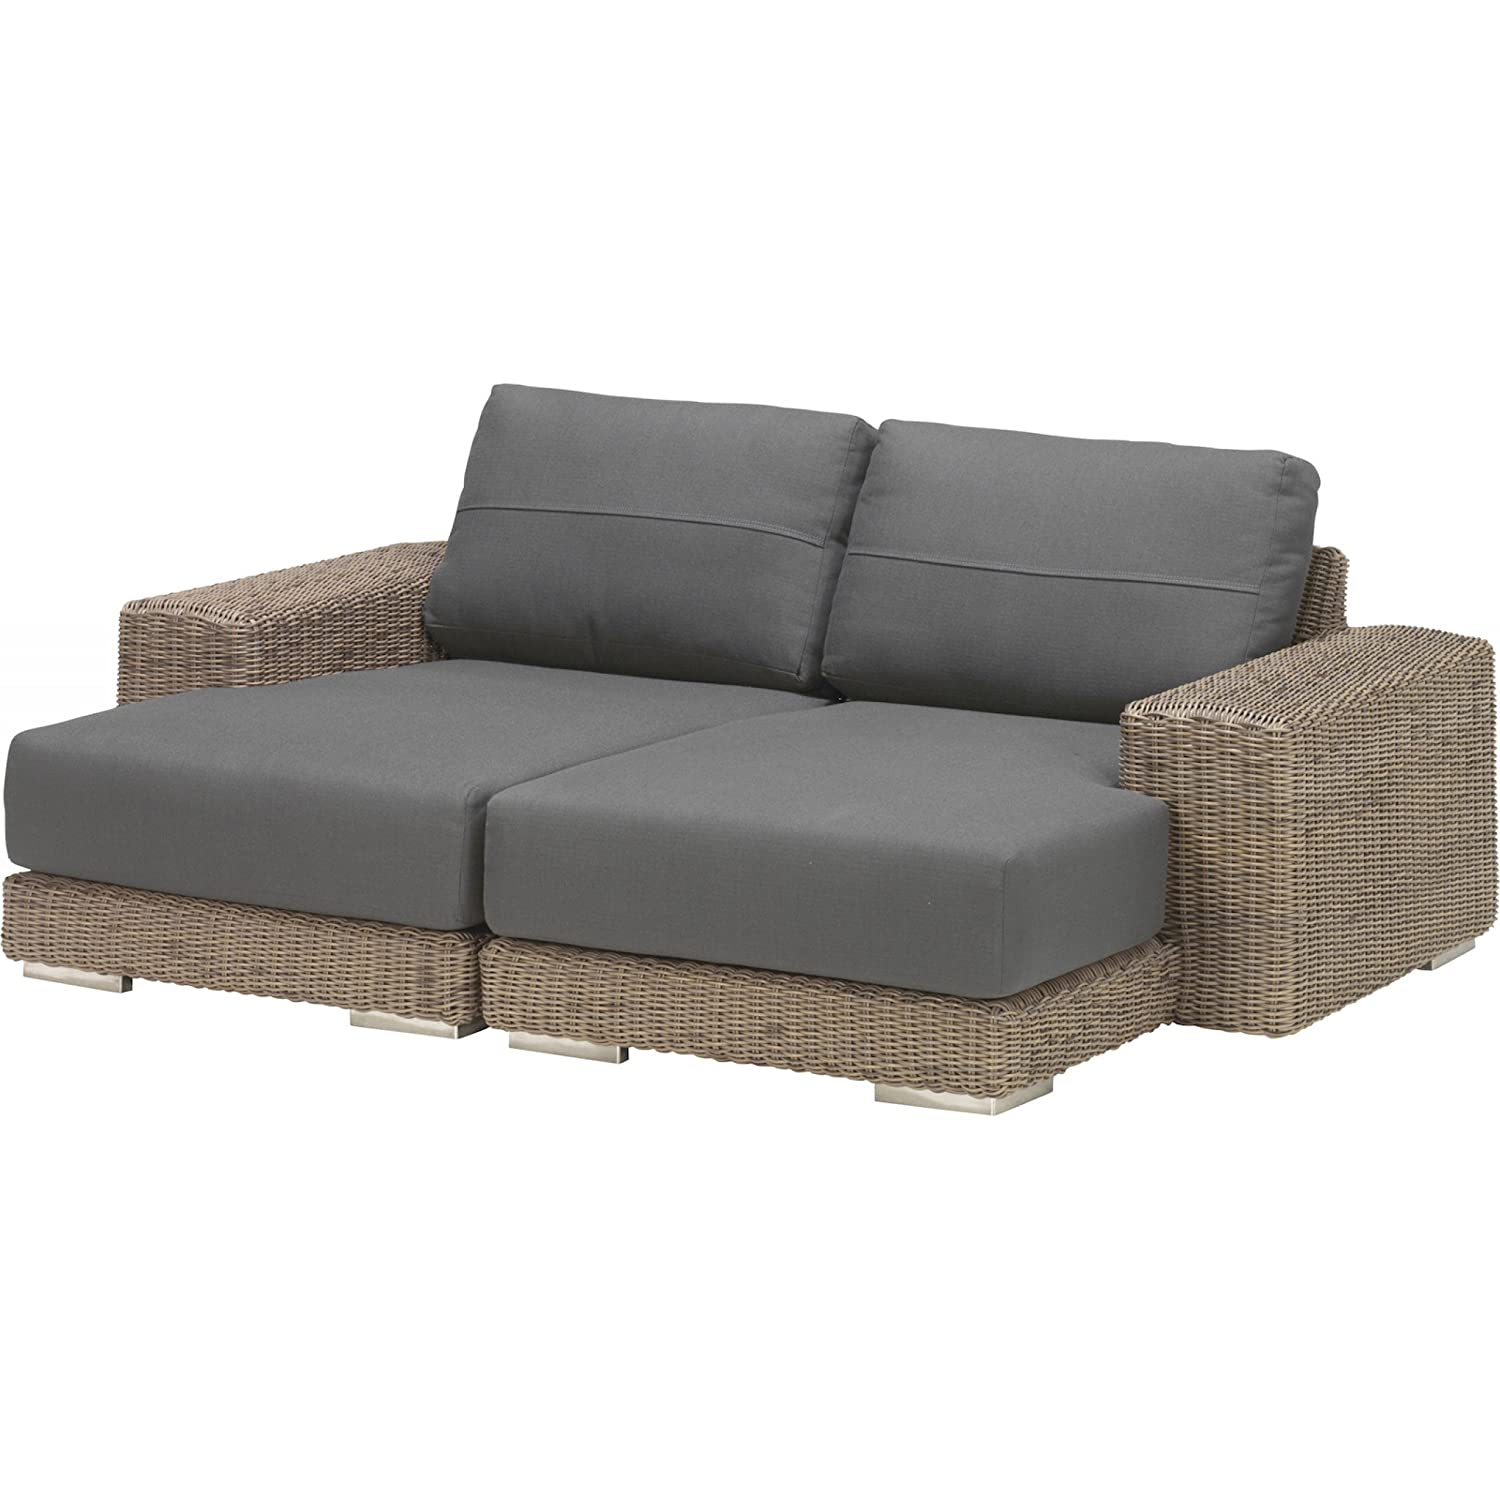 4Seasons Outdoor Kingston 2-teiliges Loungesofa Polyrattan pure inkl Kissen